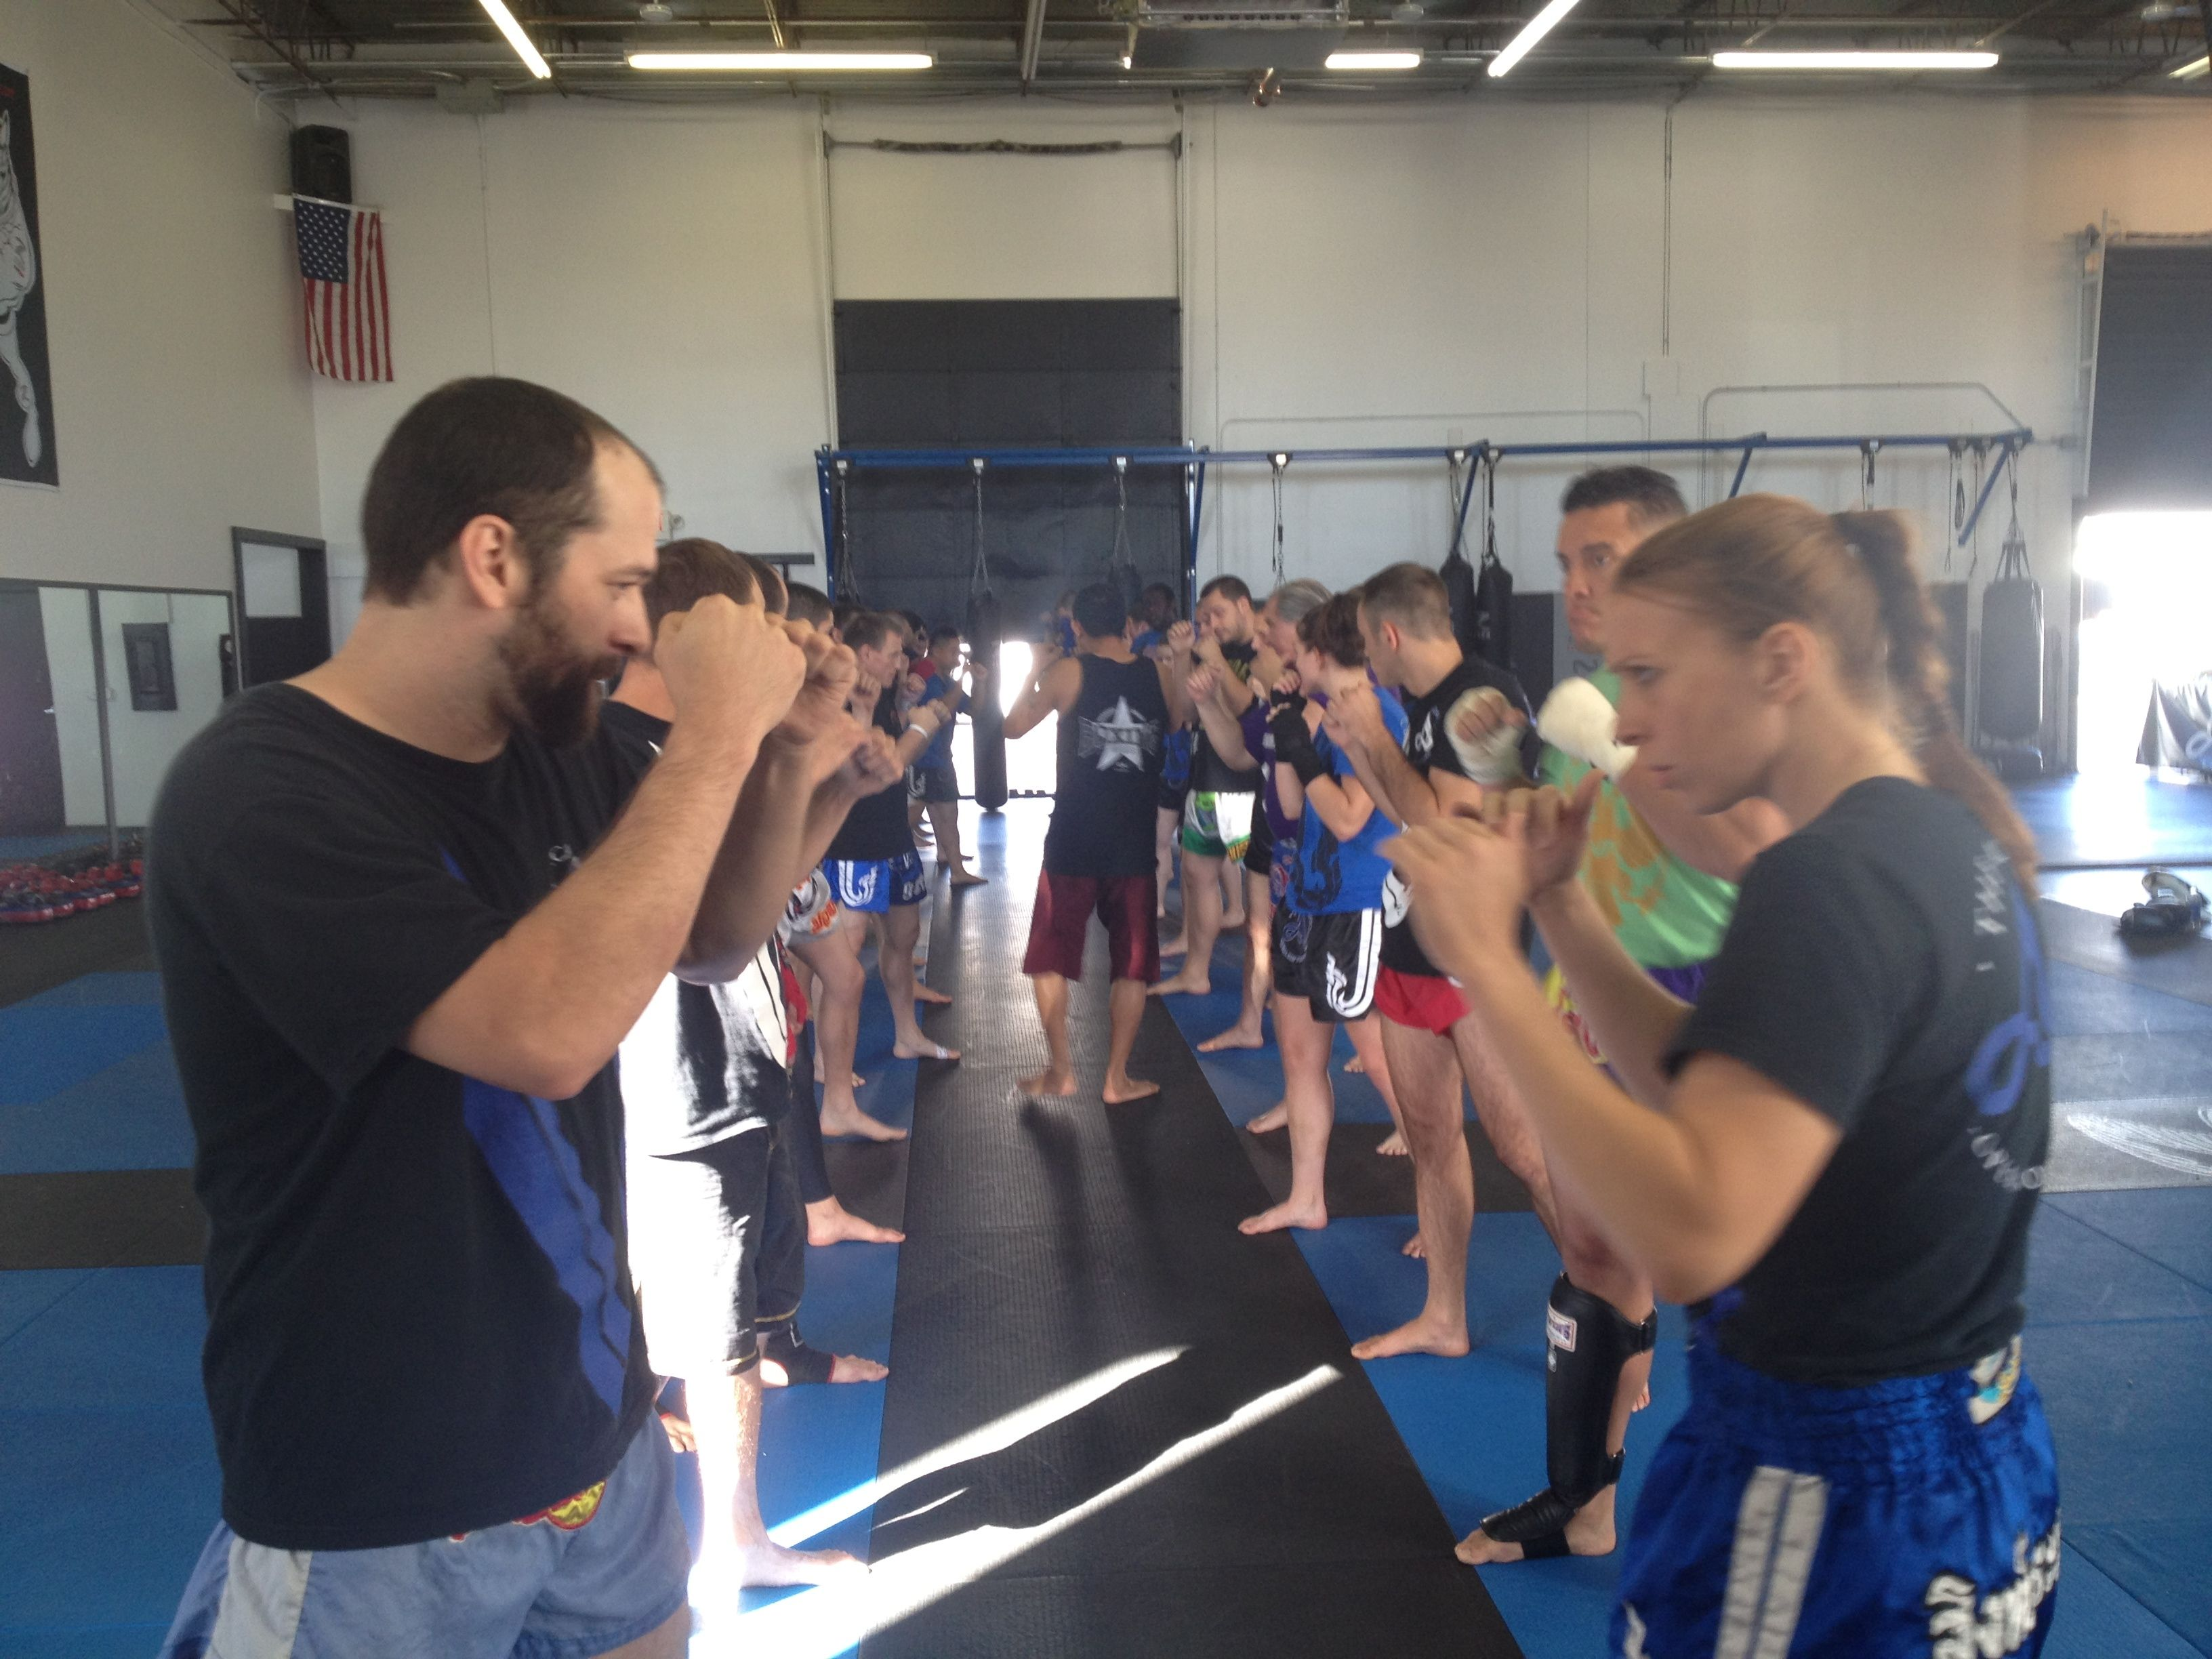 Kickboxing in Minneapolis! With world class training from Thailand!